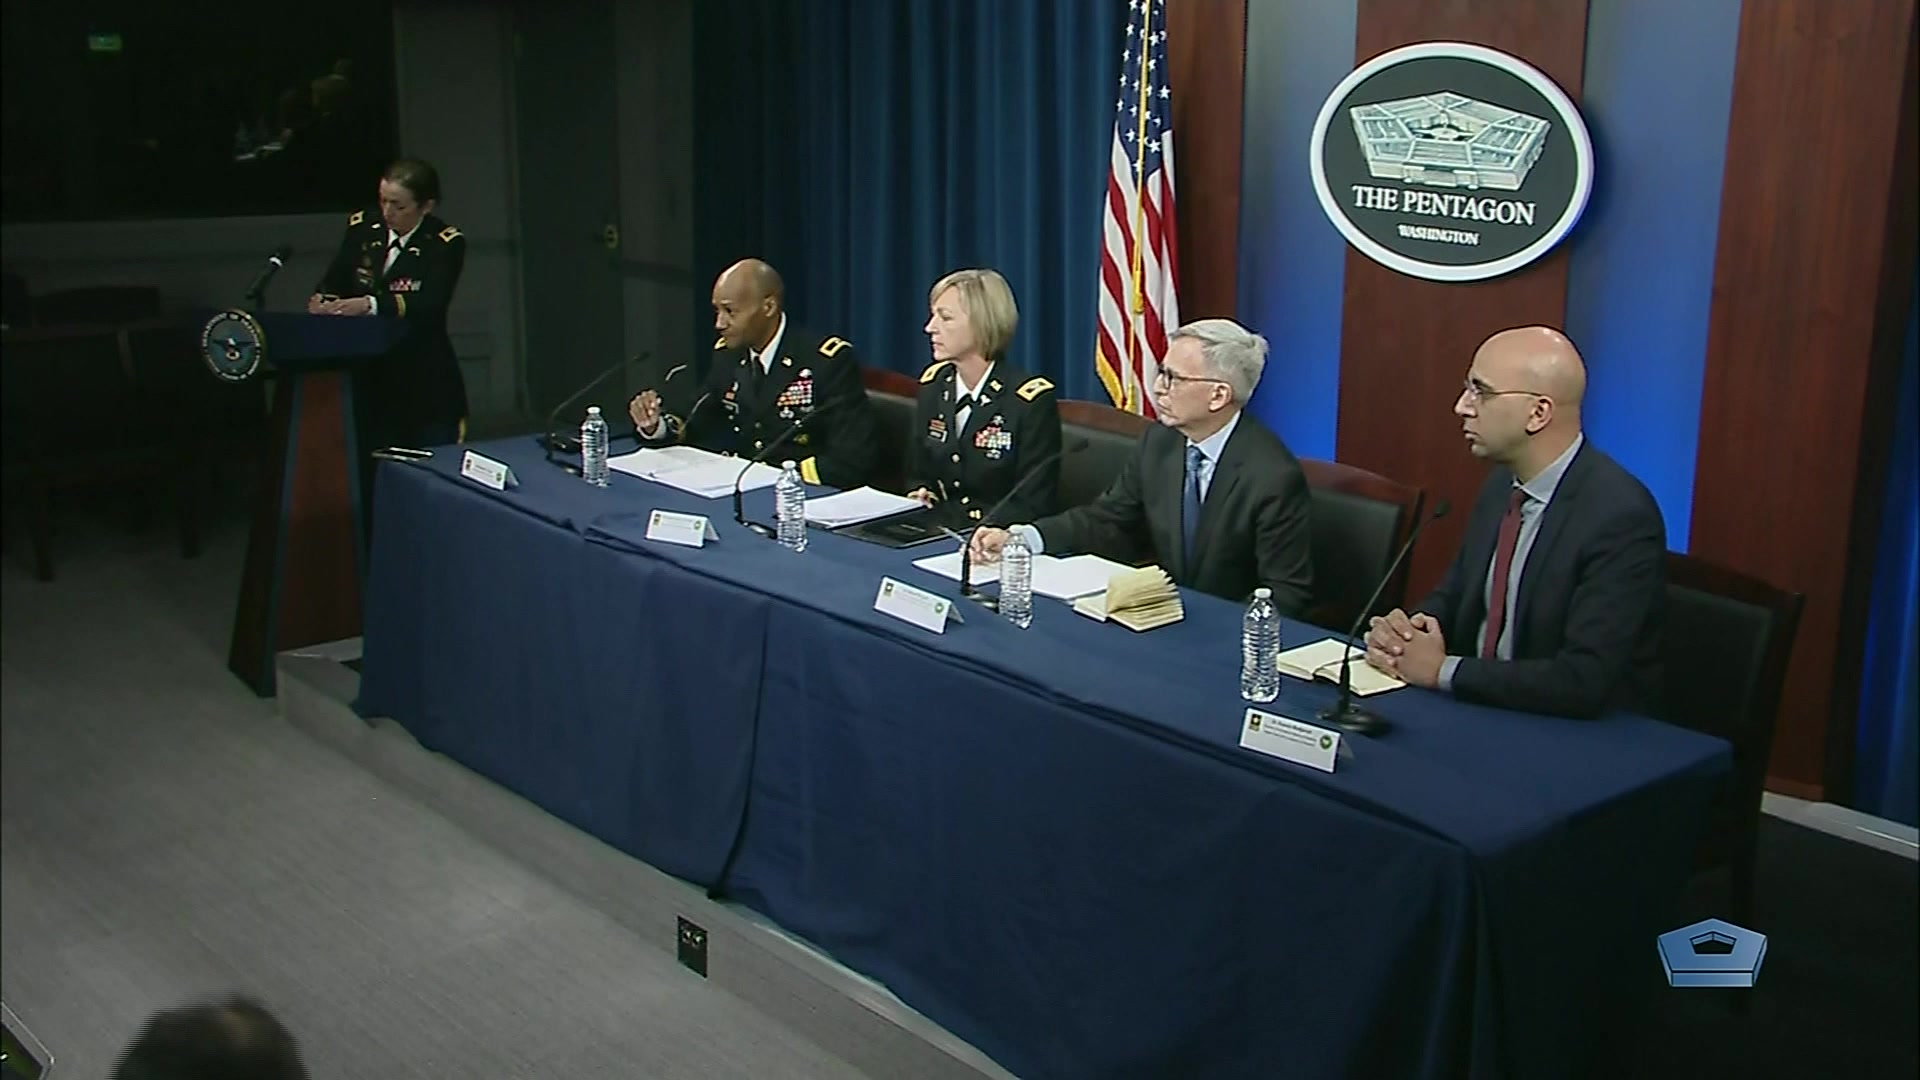 These military medical experts will discuss their efforts in supporting the whole of government approach to investigate and develop vaccine candidates against COVID-19, coronavirus, at a Pentagon news conference today: Army Brig. Gen. Michael J. Talley, commander of the U.S. Army Medical Research and Development Command and Fort Detrick, Md.; Army Col. Wendy Sammons-Jackson, director of USAMRDC's Military Infectious Disease Research Program; Dr. Nelson Michael, director of the Center for Infectious Disease Research at the Walter Reed Army Institute of Research; and Dr. Kayvon Modjarrad, director of Emerging Infectious Diseases at the Walter Reed Army Institute of Research, March 5, 2020.